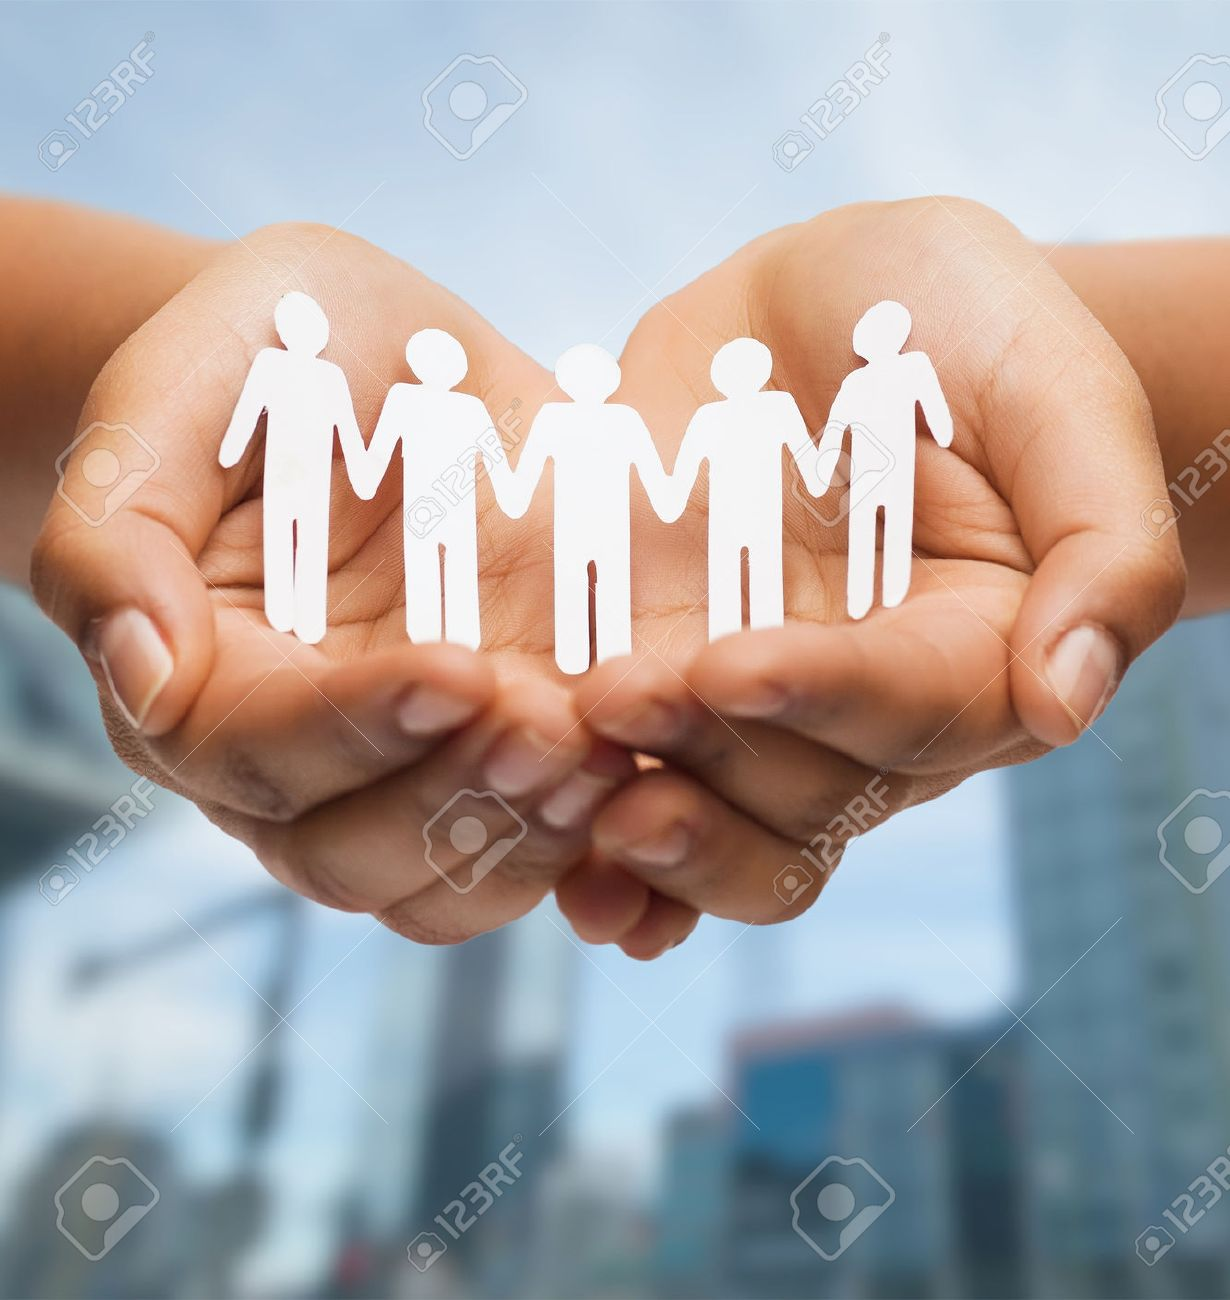 building a social network stock photos images royalty building a social network relationships and love concept w s hands showing paper cutout team